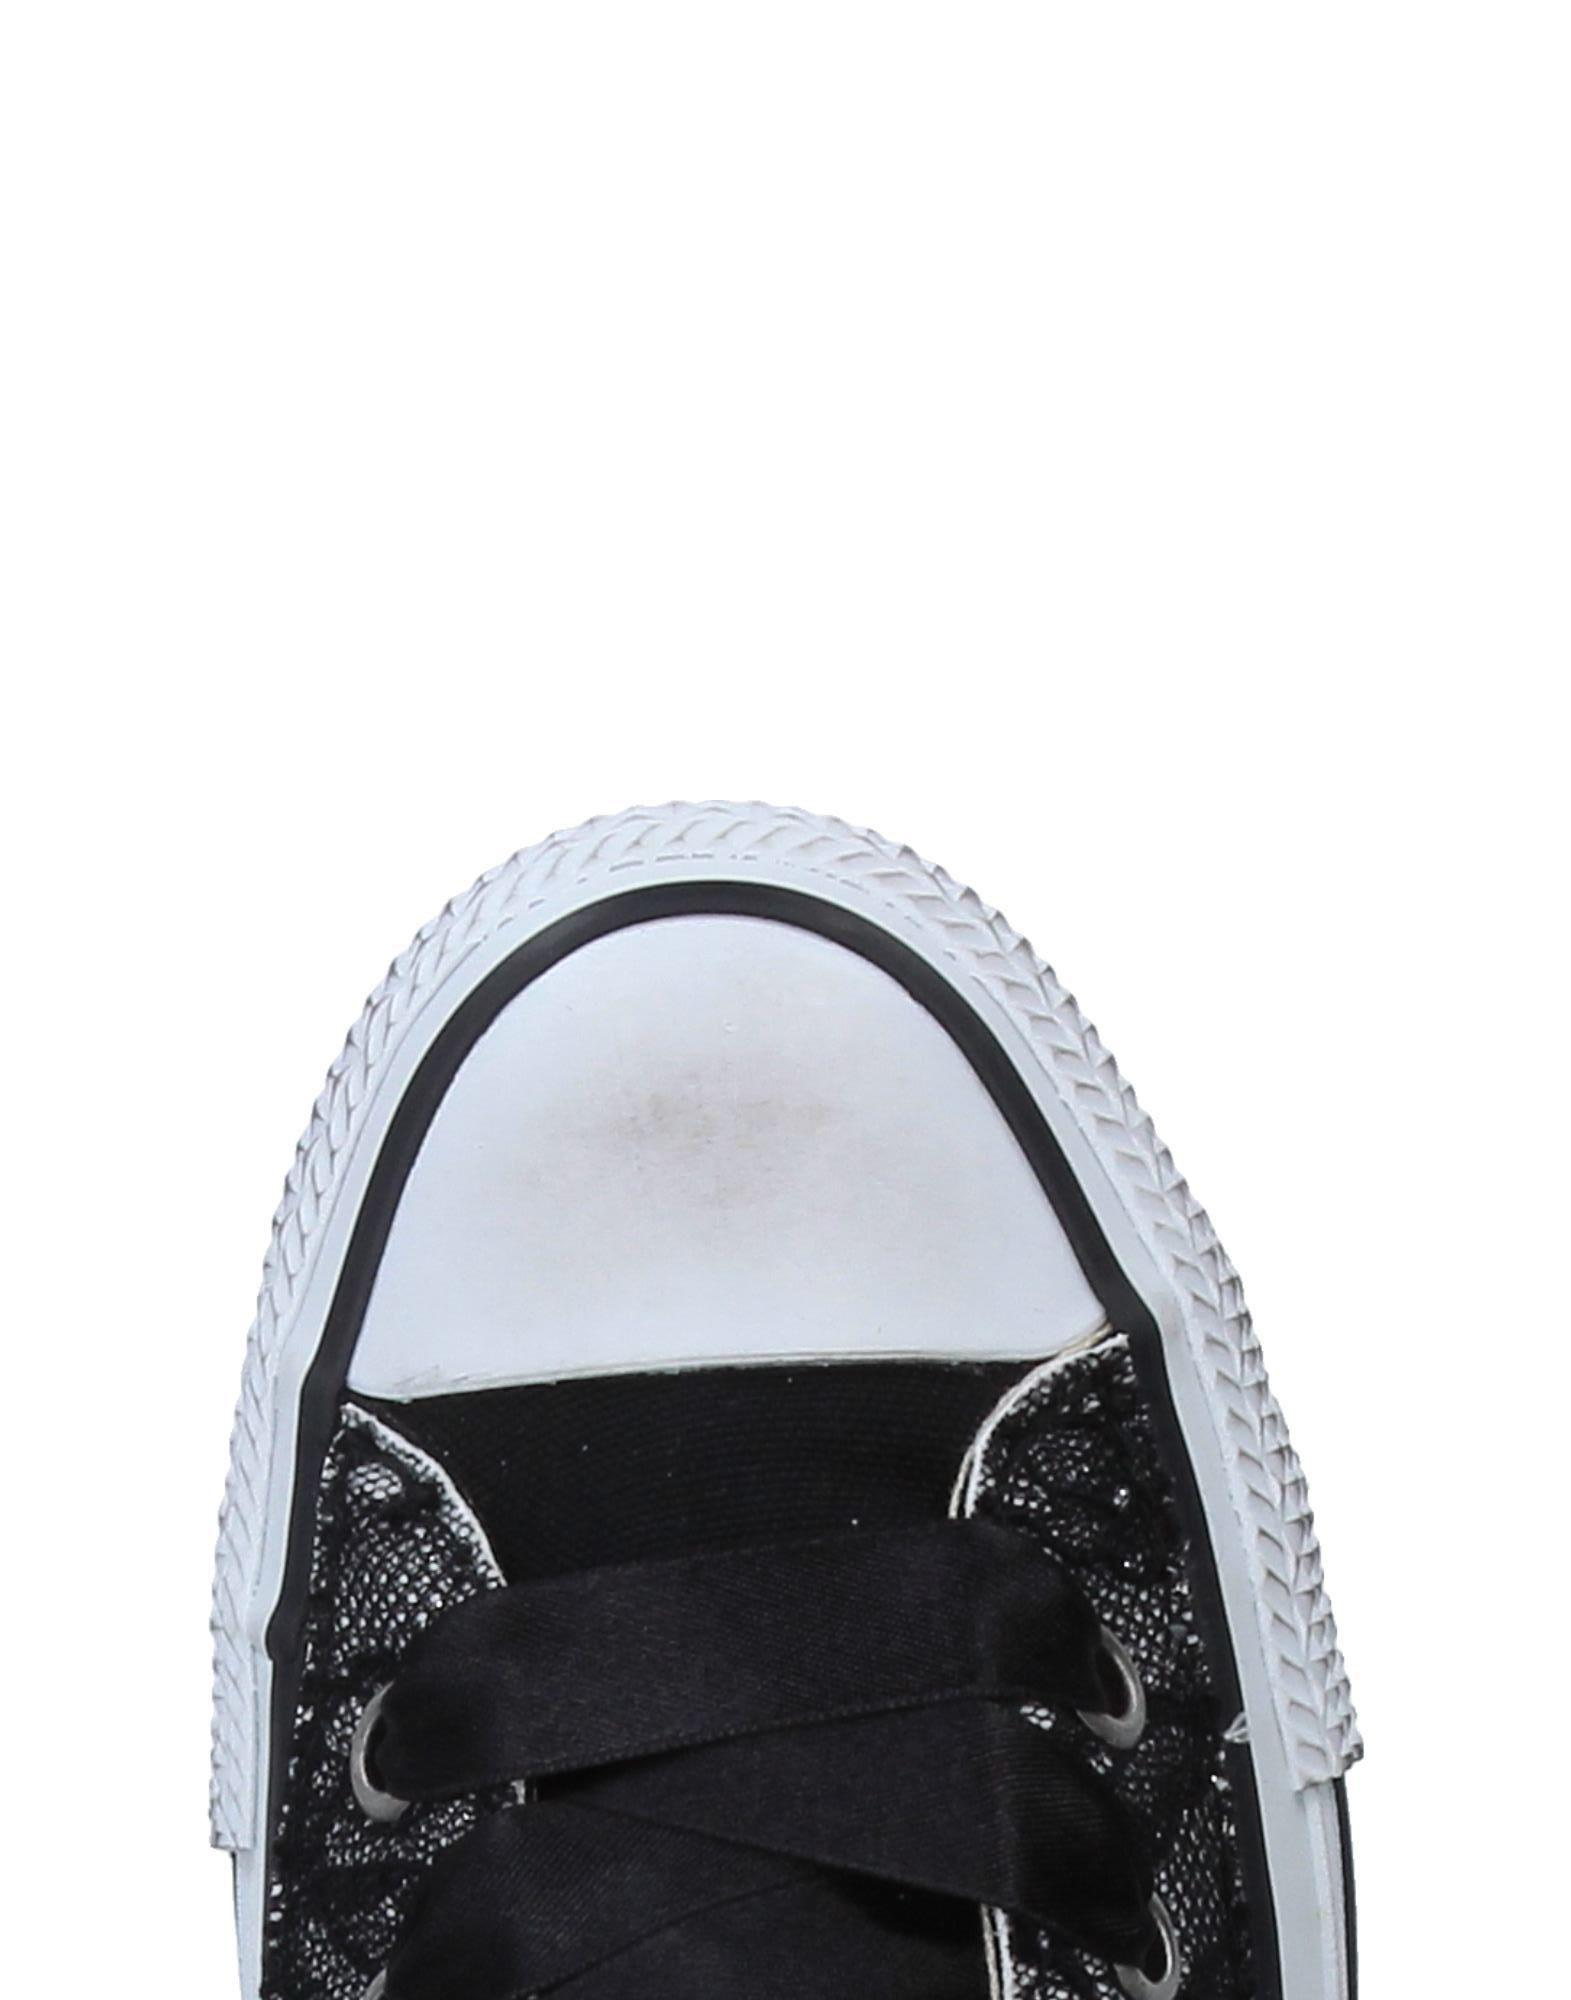 Converse Lace High-tops & Sneakers in Black